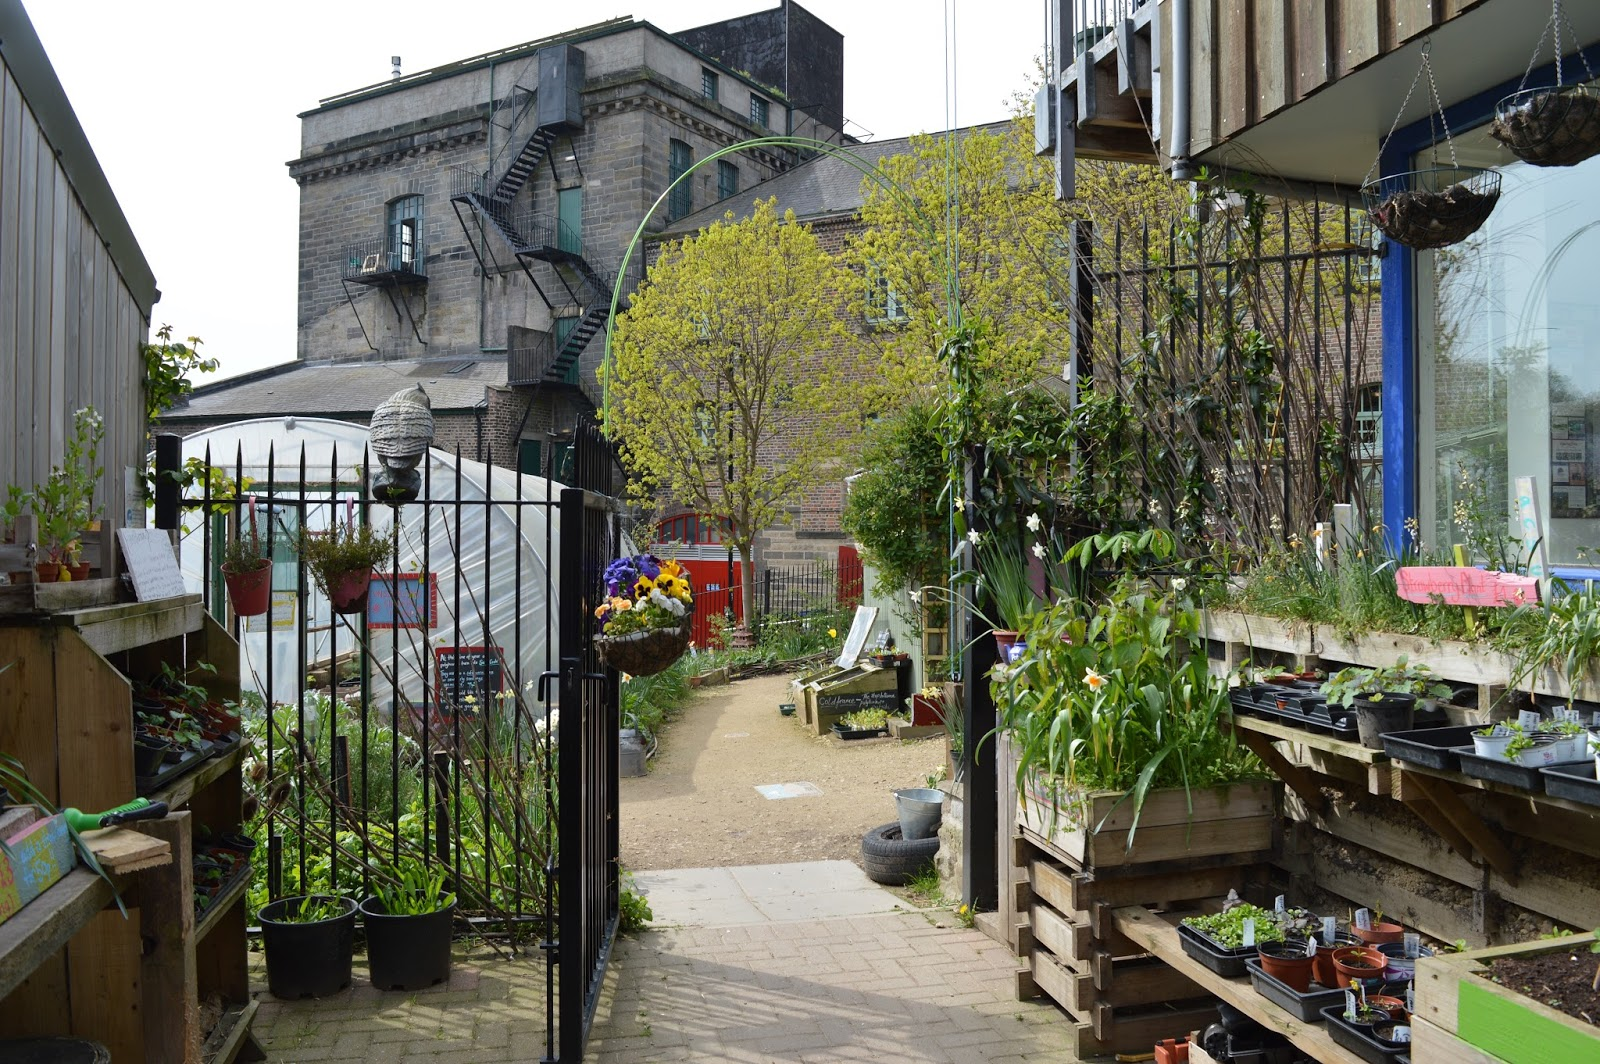 Beer Garden & Foodie Heaven in Ouseburn, Newcastle - Ouseburn City Farm